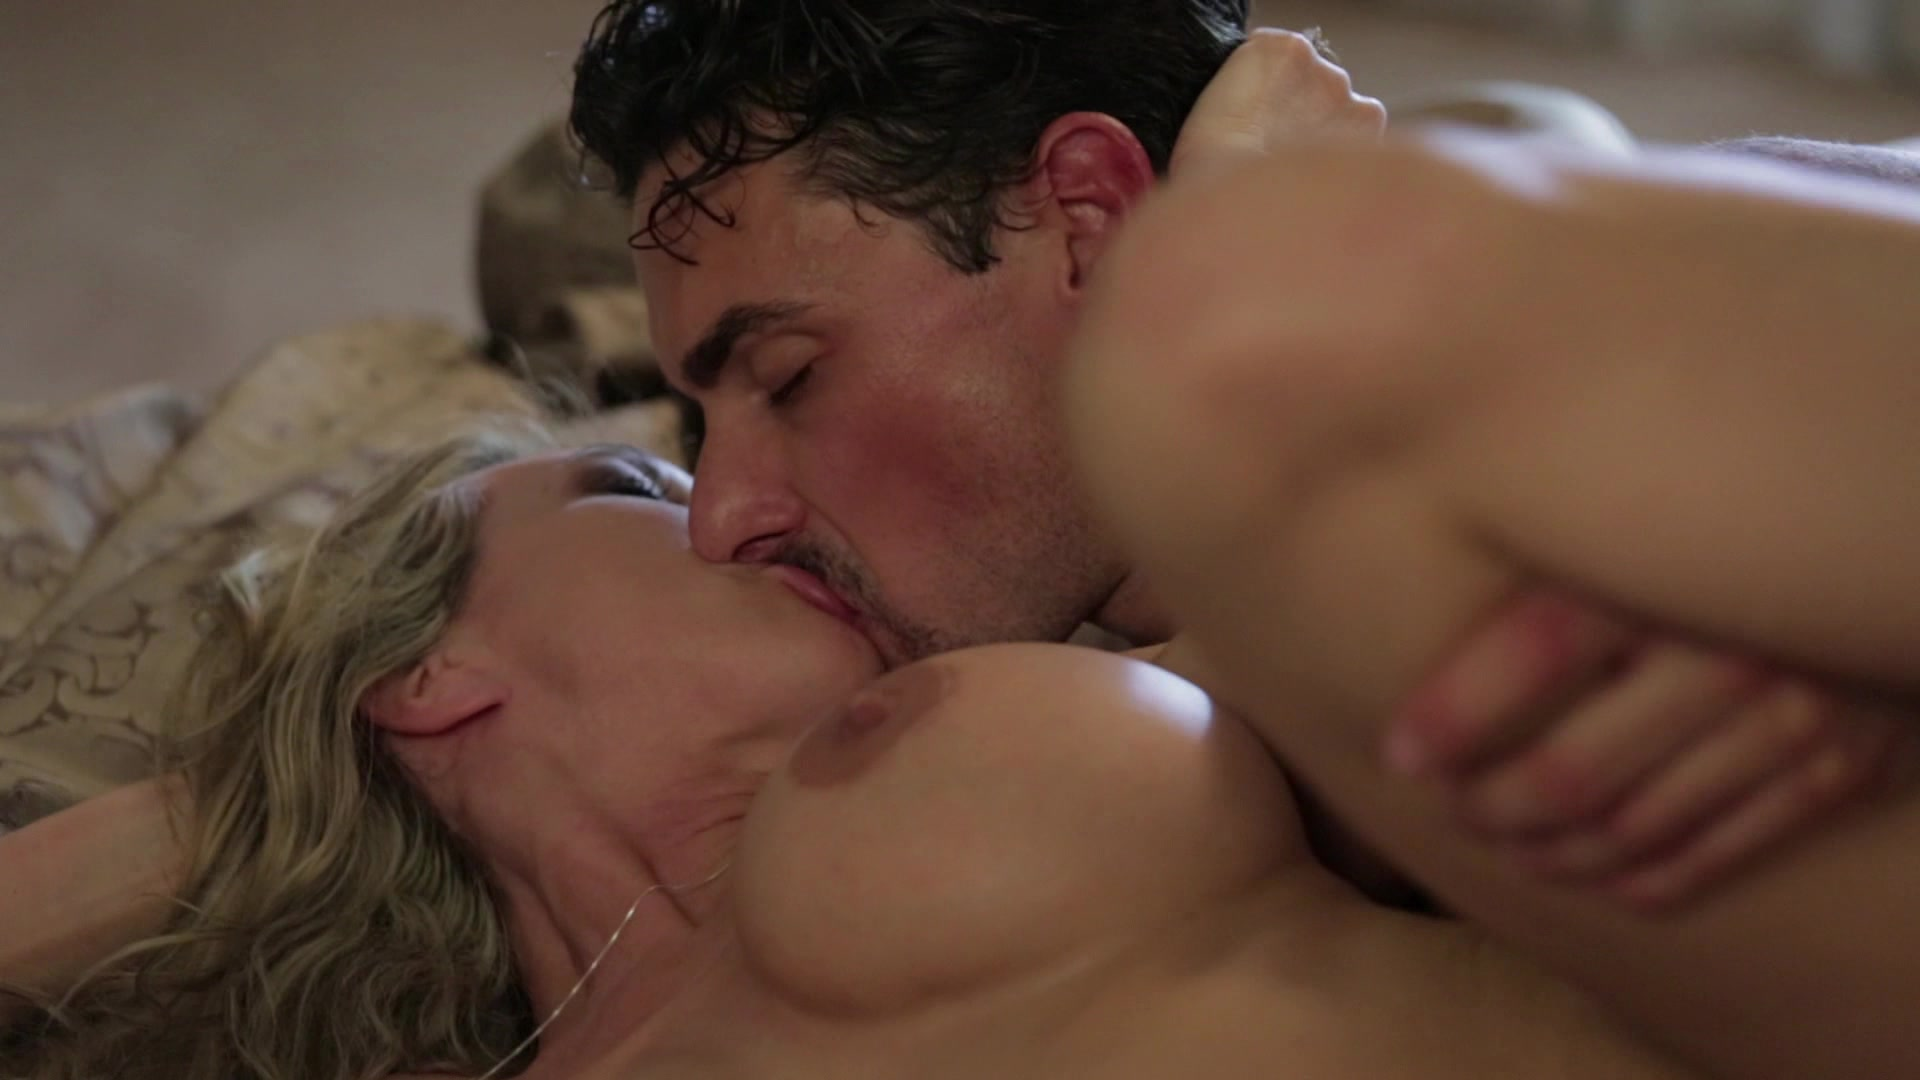 Aftermath Porn Movie aftermath (2014) | wicked pictures | adult dvd empire